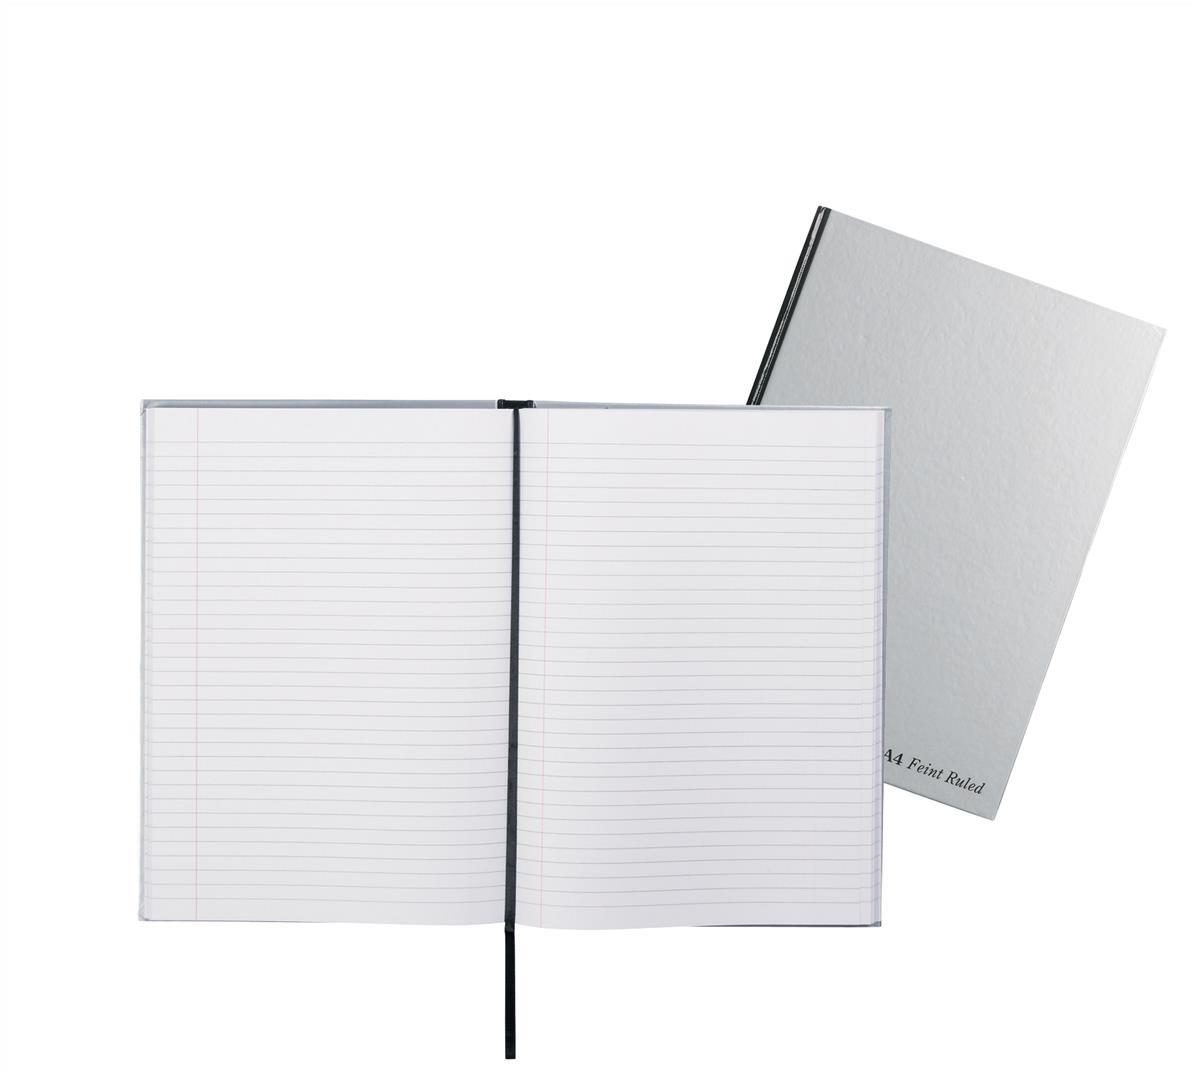 Pukka Pad Notebook Casebound Hardback Ruled with Ribbon 90gsm 192pp A4 Silver Ref RULA4 [Pack 5]